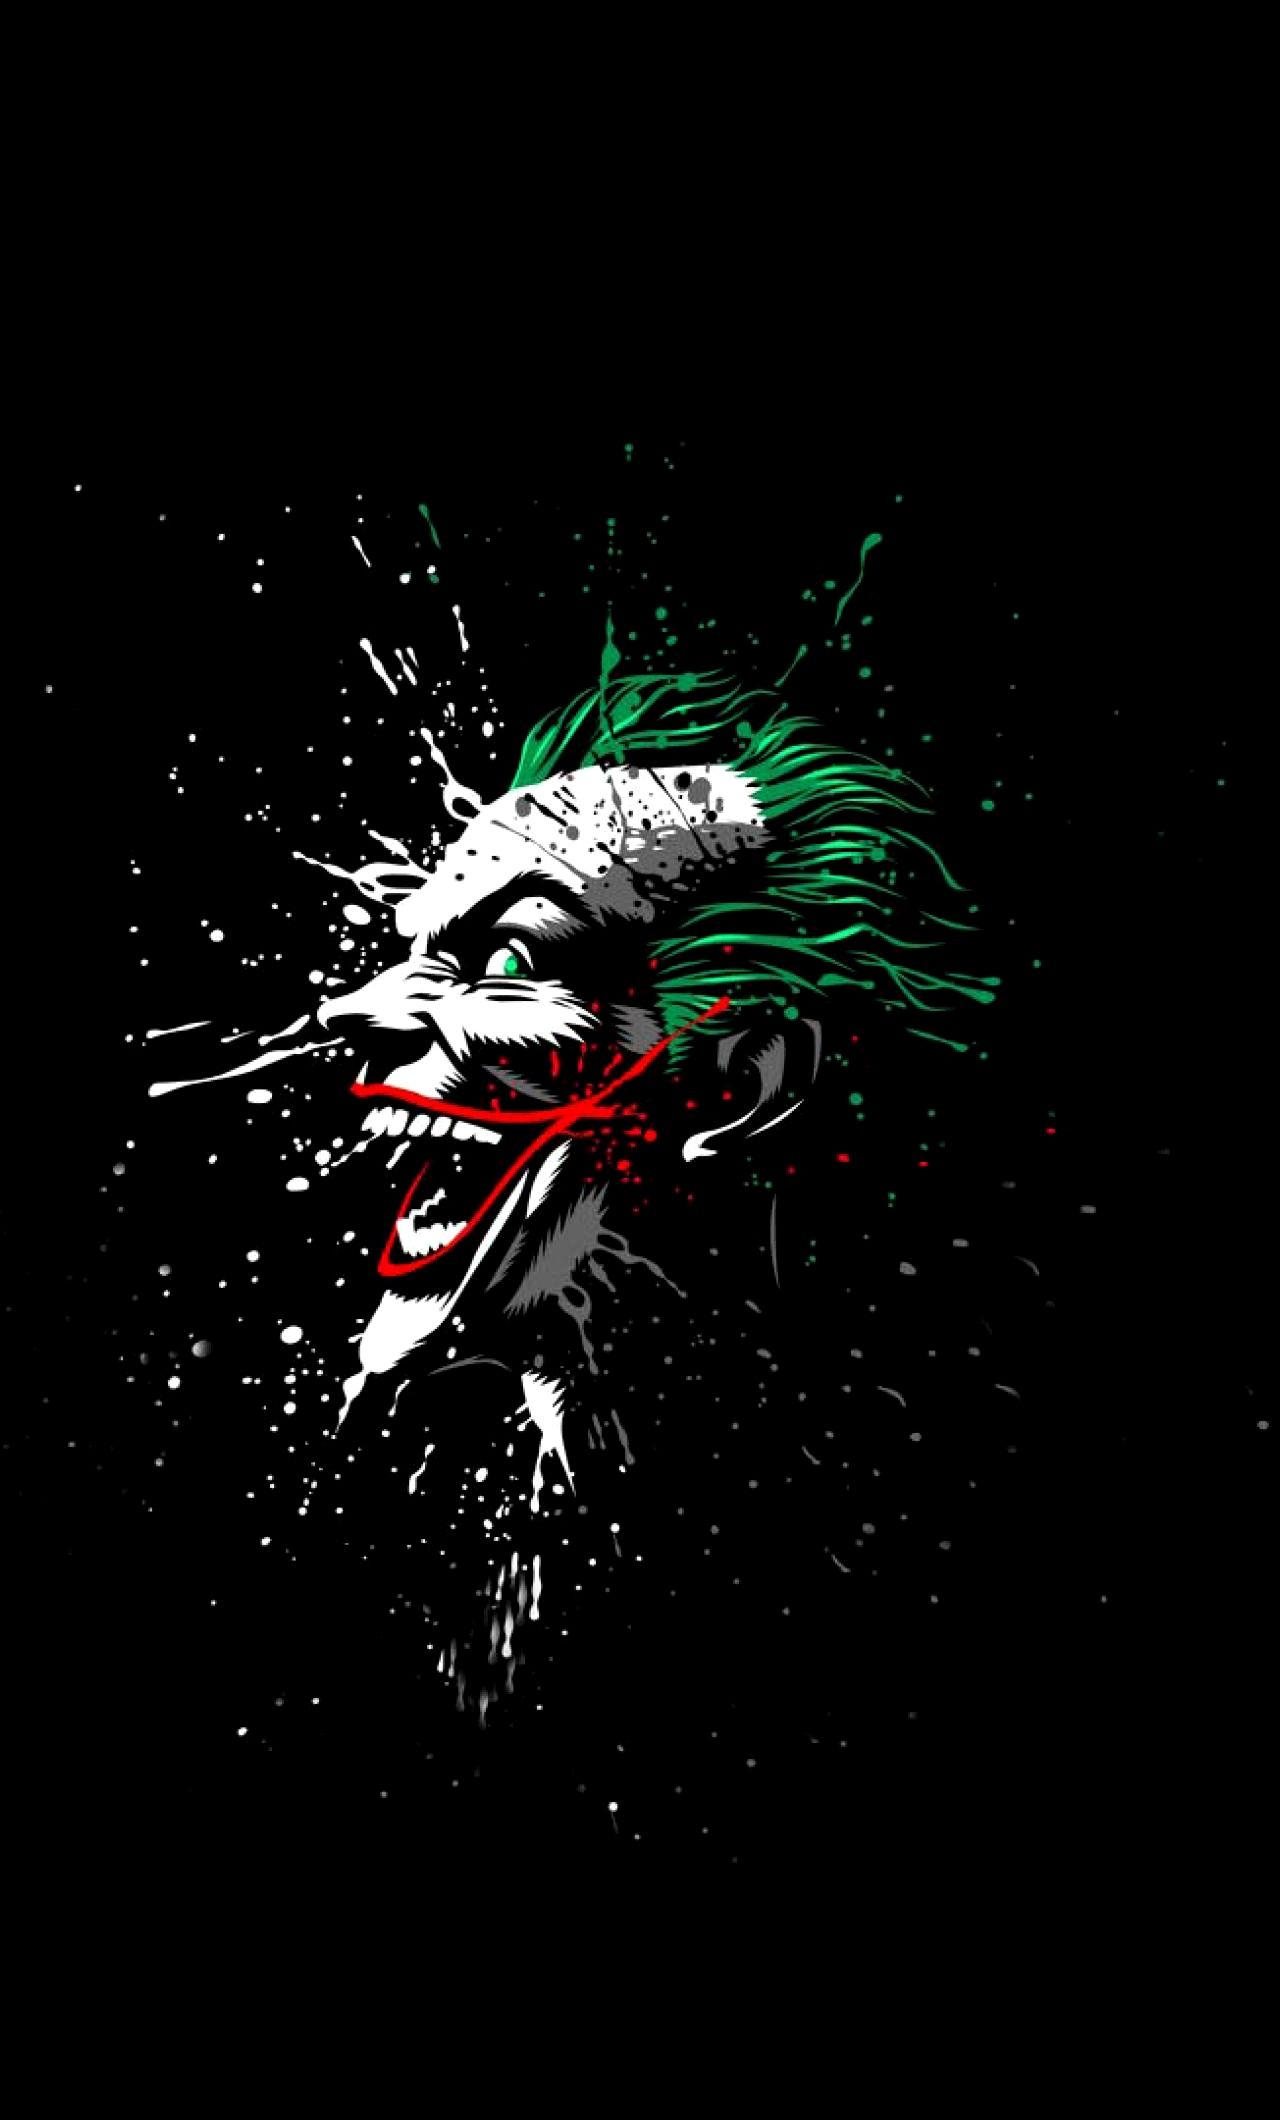 4k Wallpaper For Mobile Joker Ideas Joker Artwork Joker Iphone Wallpaper Joker Hd Wallpaper